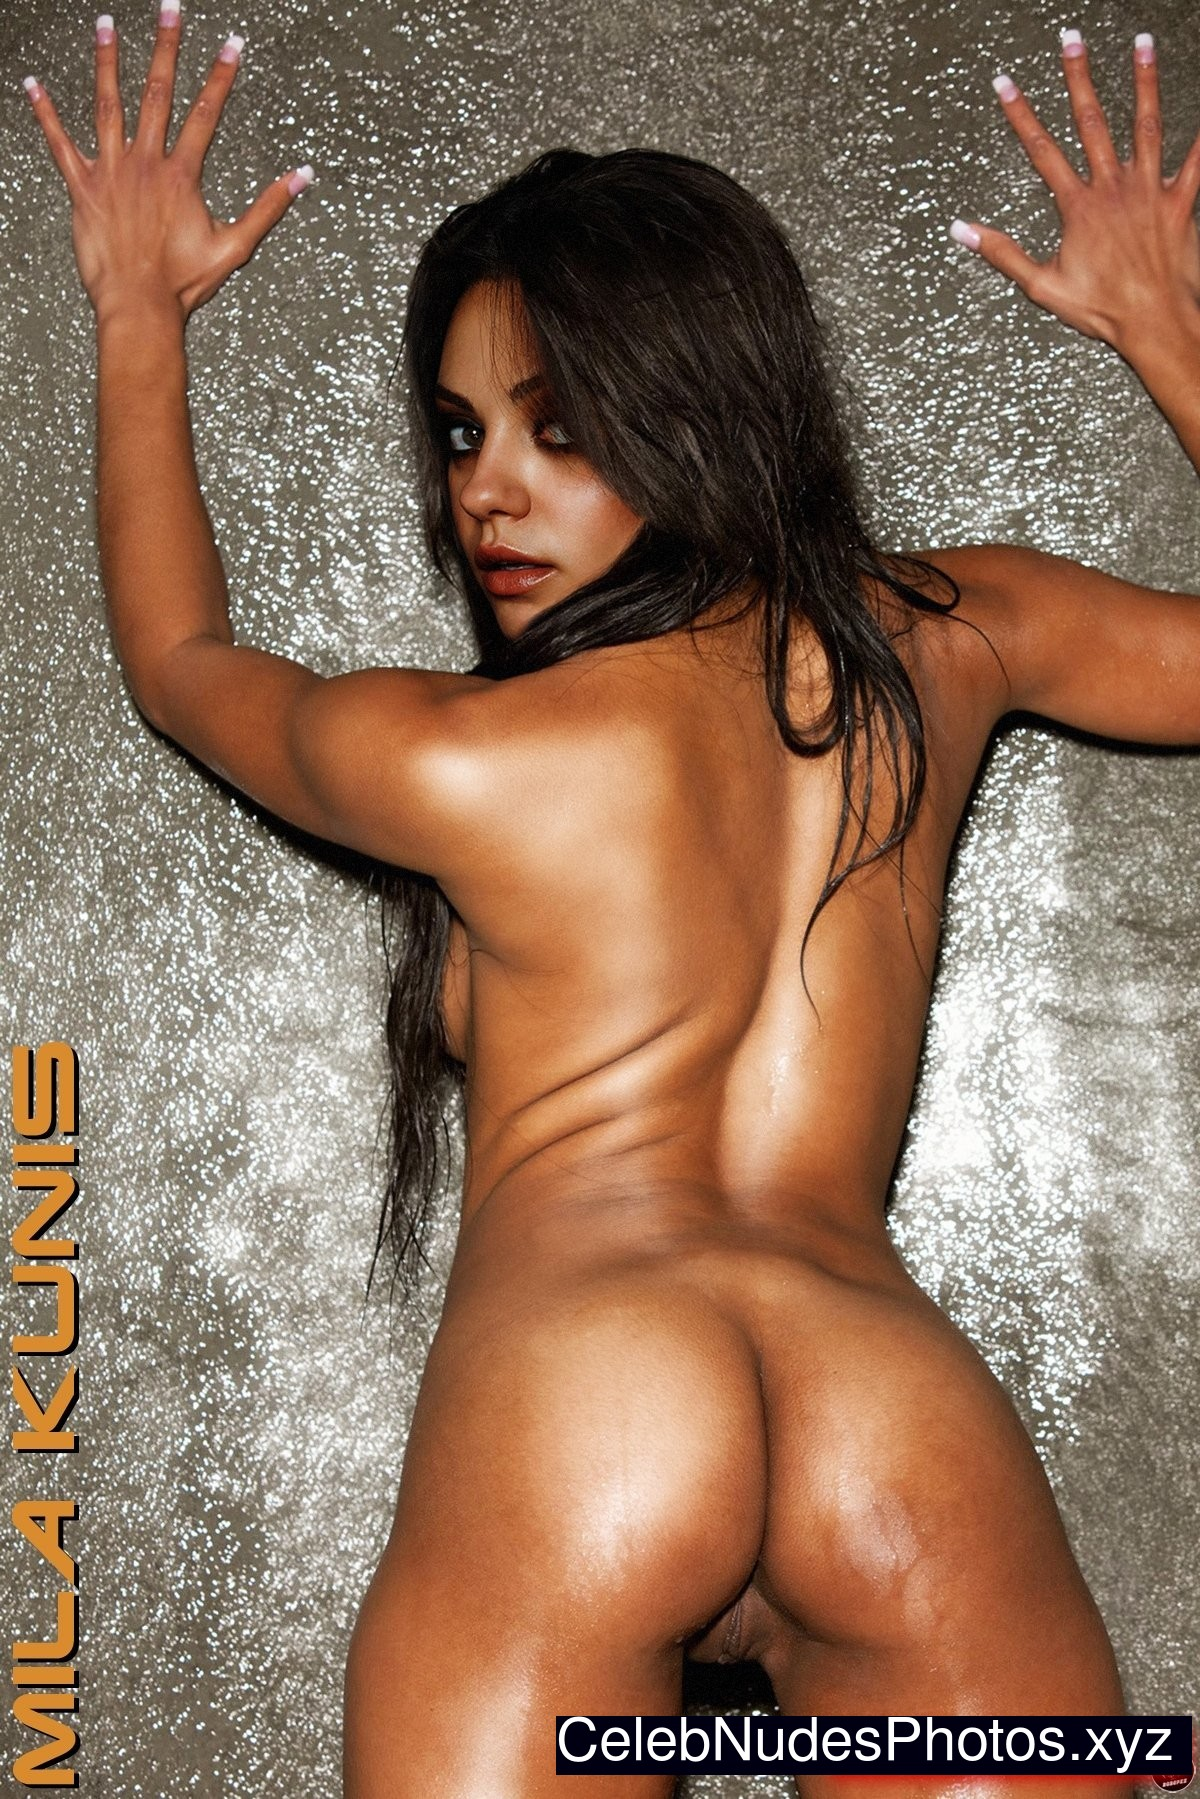 sheyla hershey sex videos